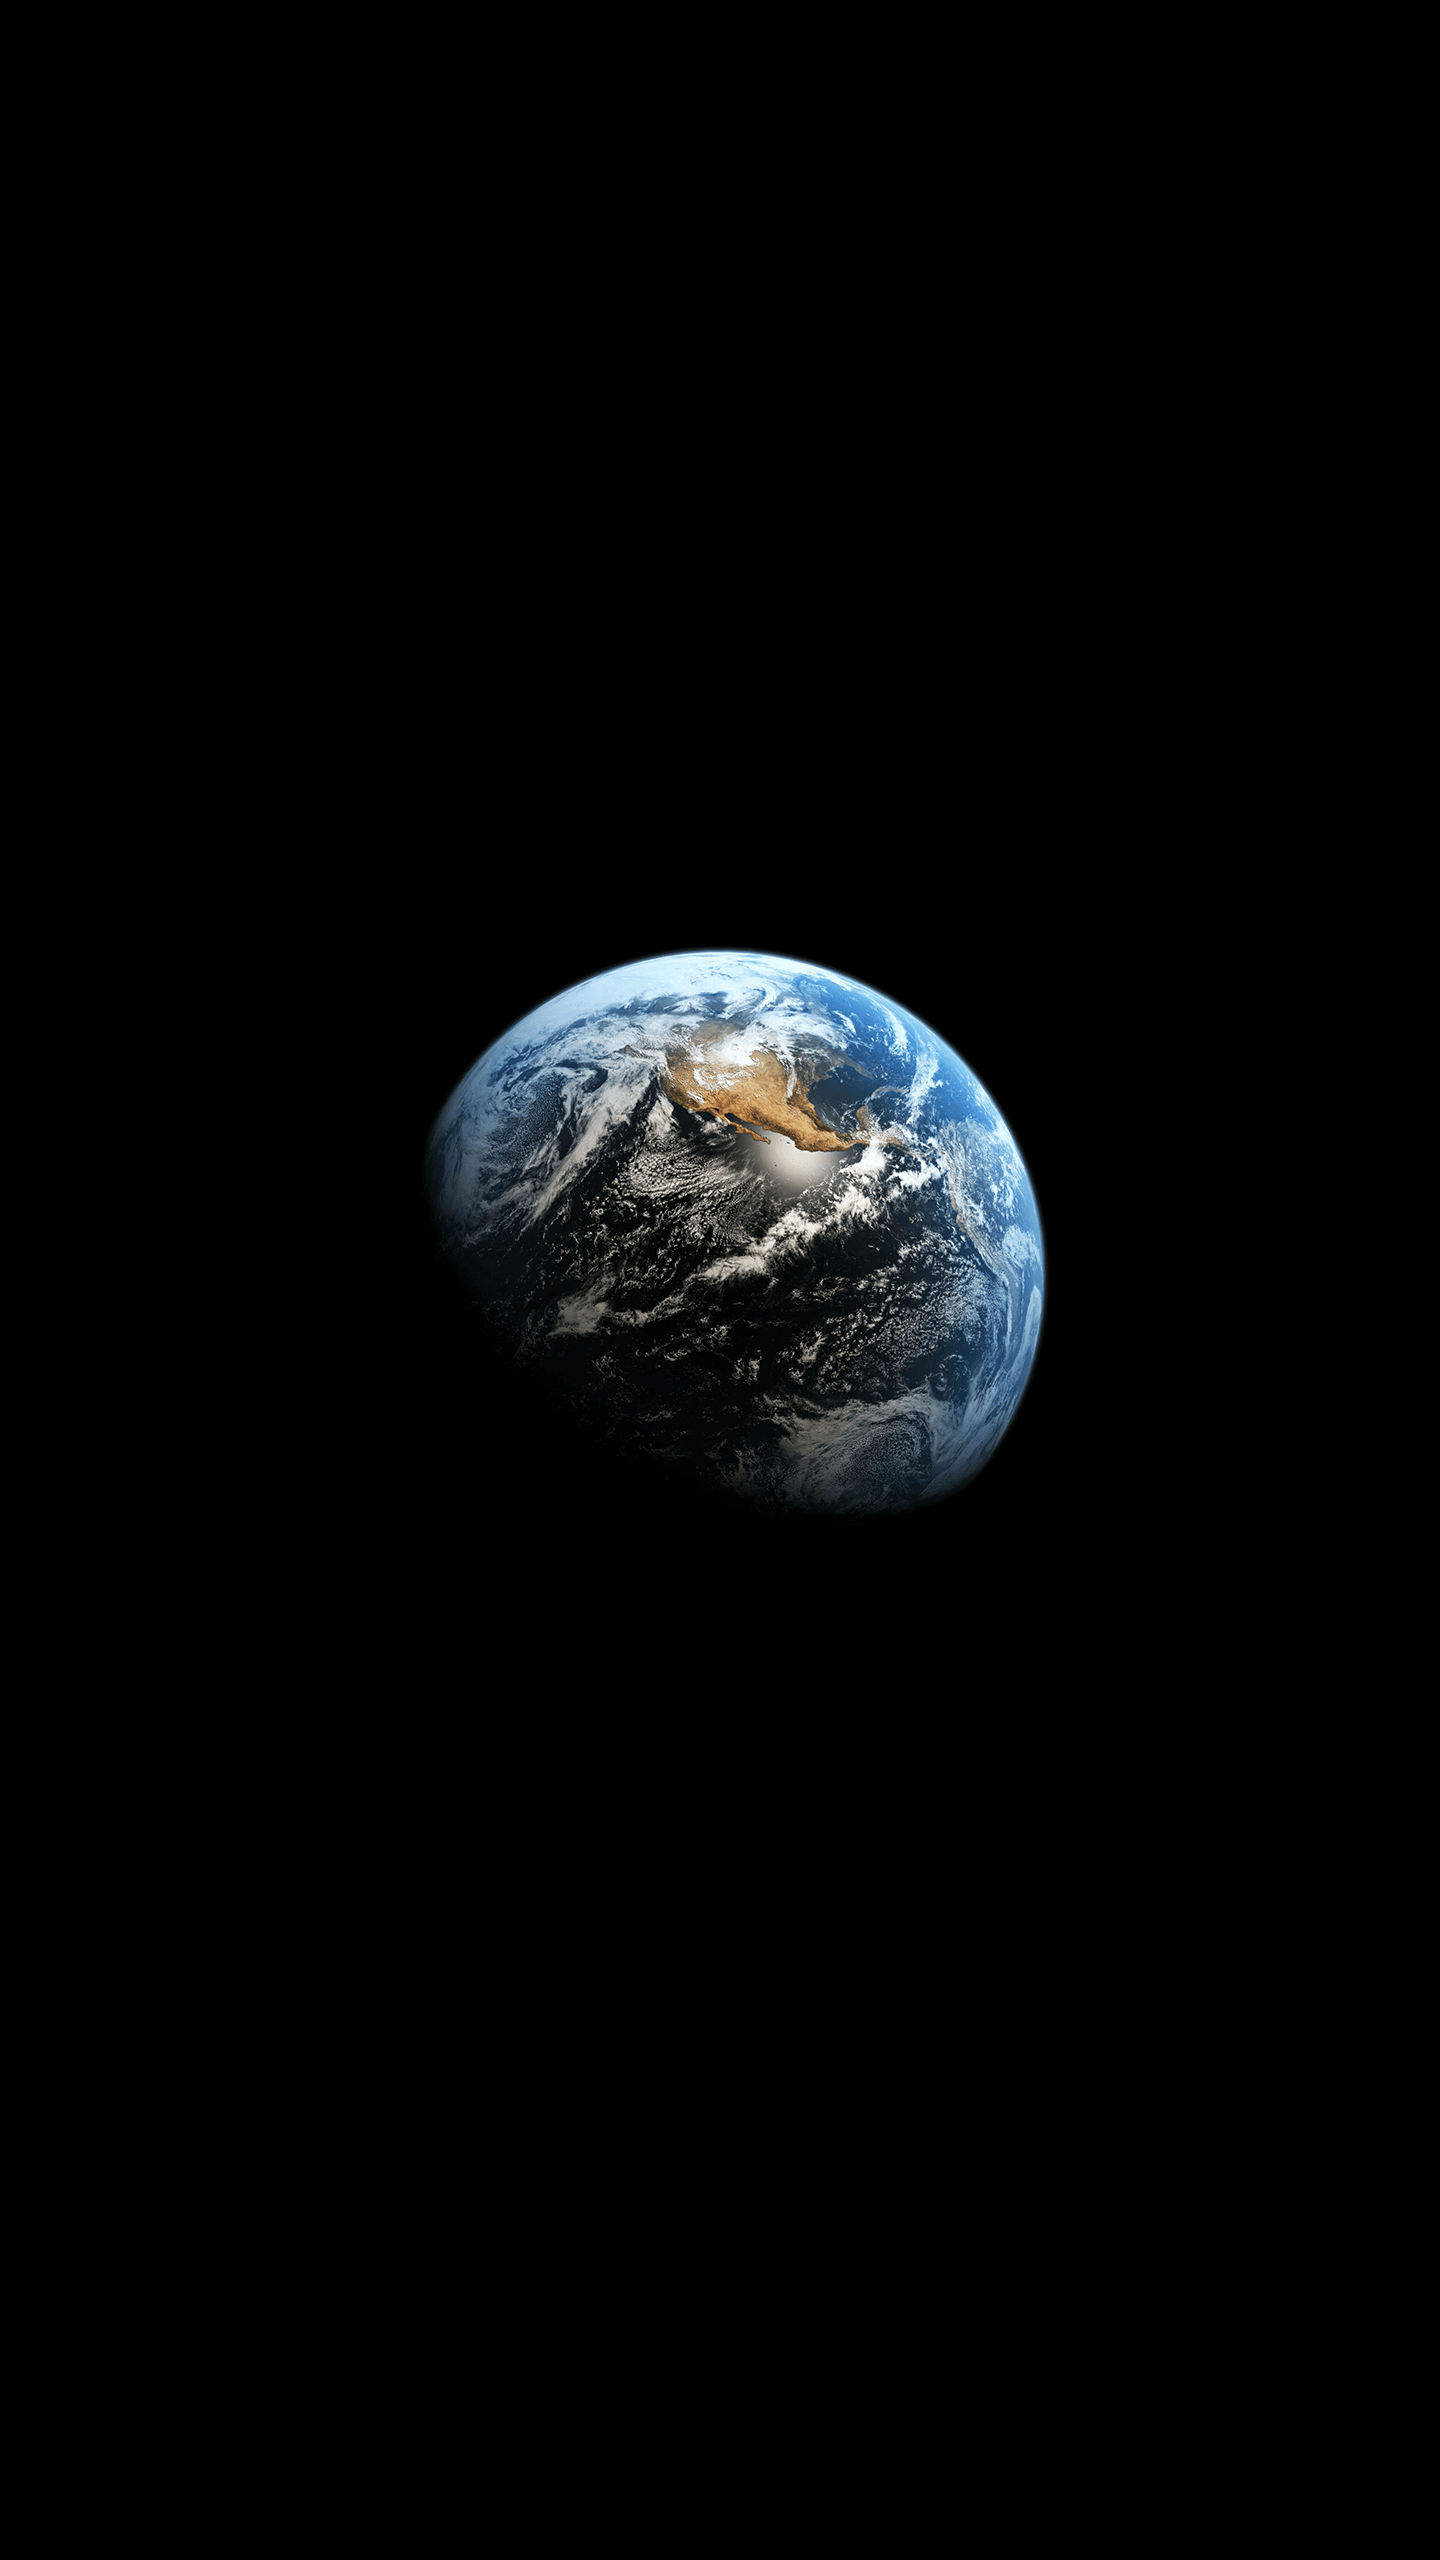 Samsung Galaxy S7 Wallpaper Earth 1440x2560p HD